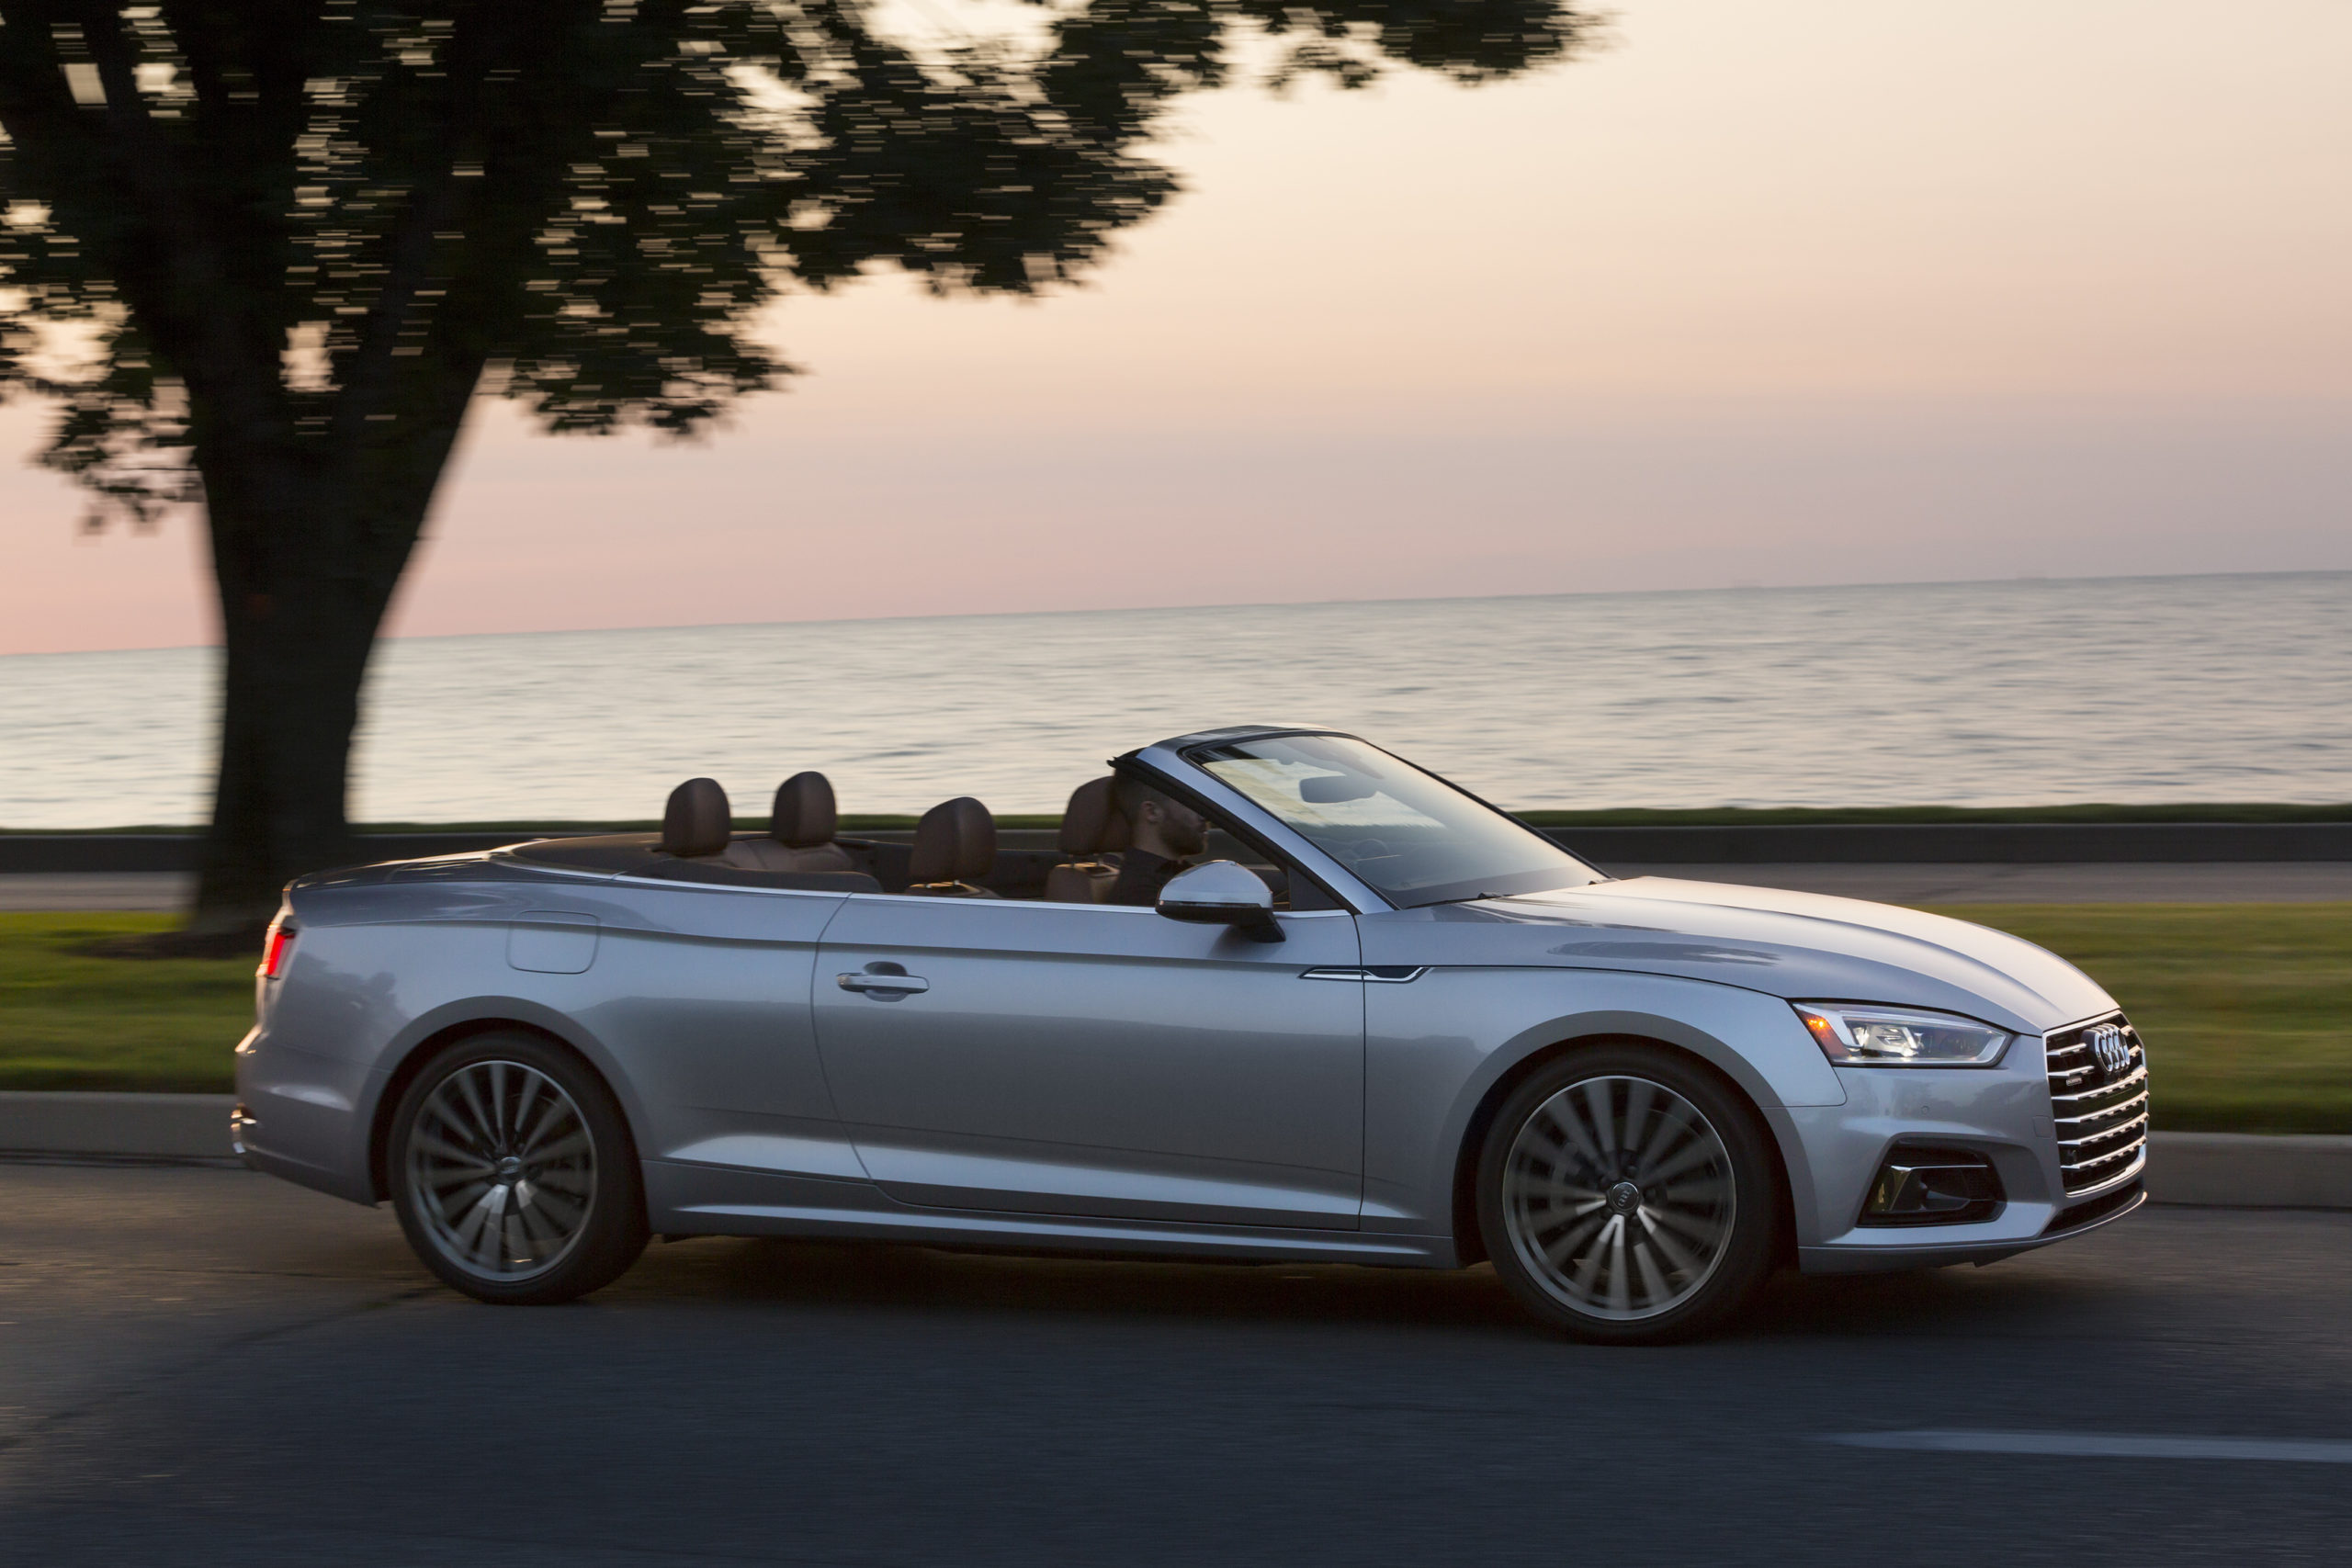 Silver 2021 Audi A5 Cabriolet - best 4 seat convertibles